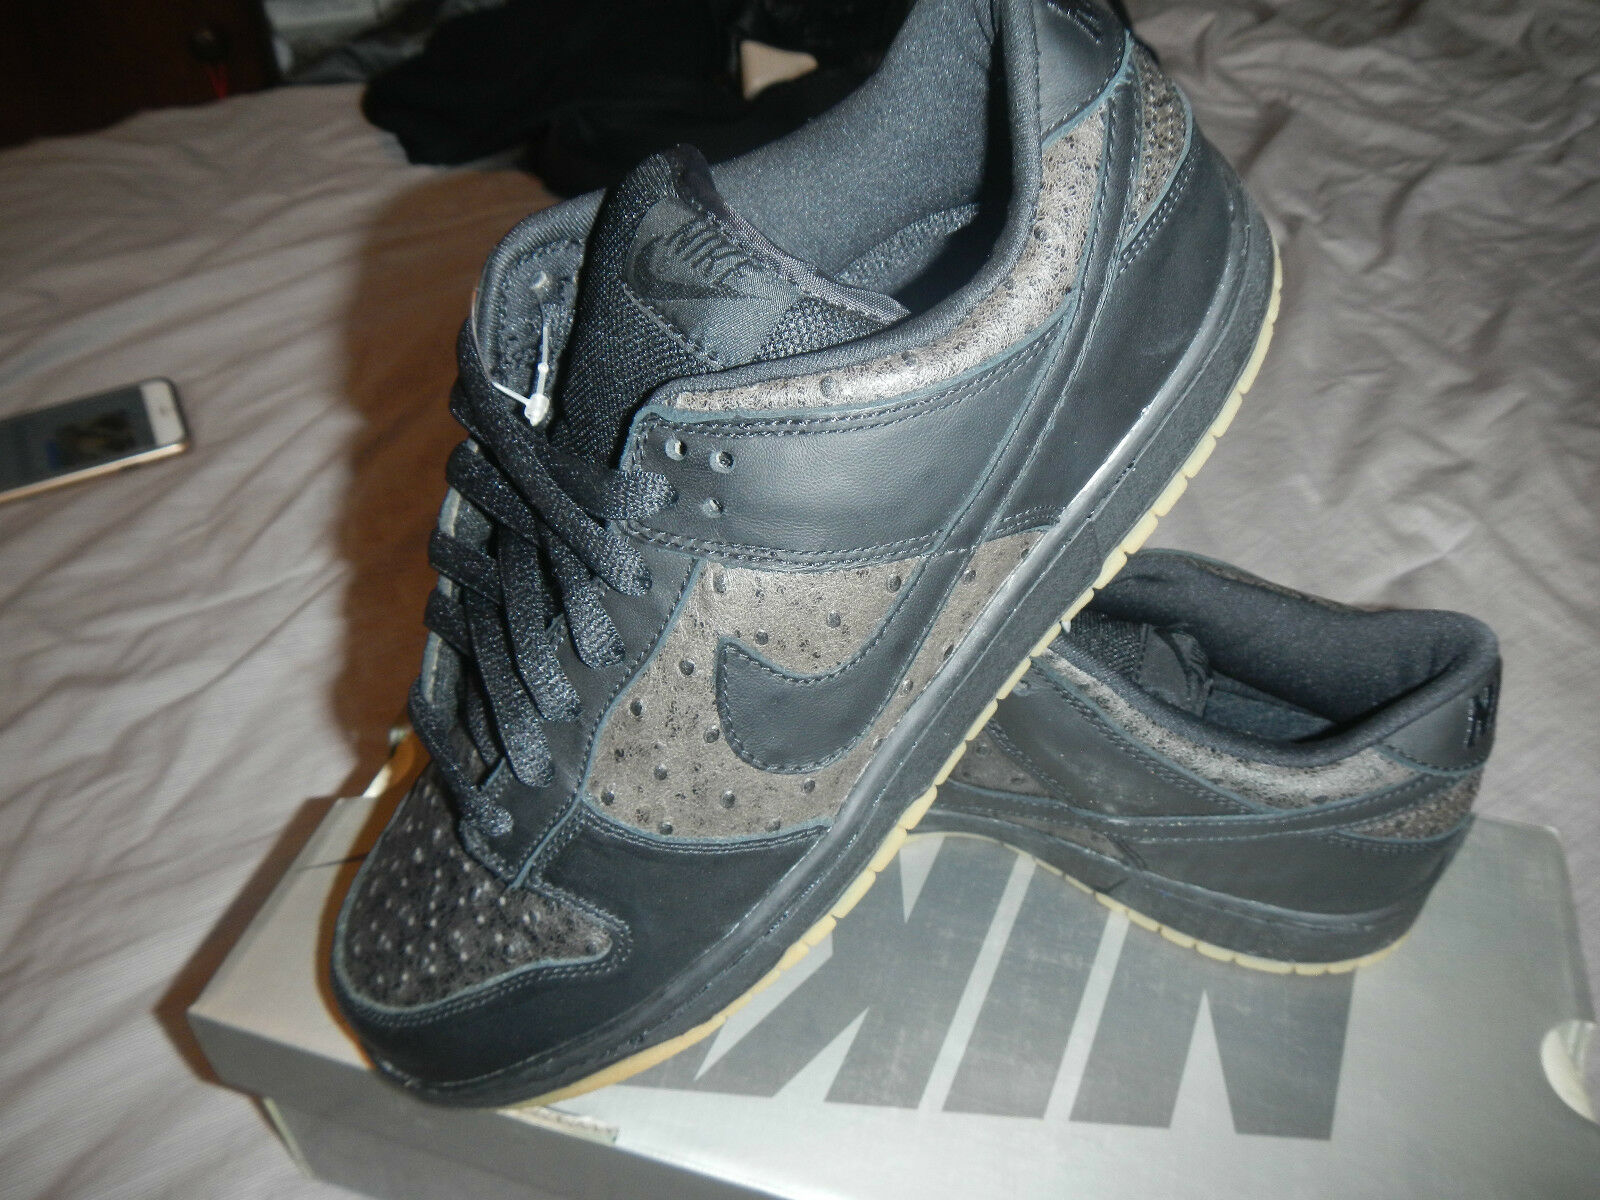 304292 003 NIKE DUNK LOW PR0 SB  OSTRICH  2003 RARE RELEASED   SIZE 9.5